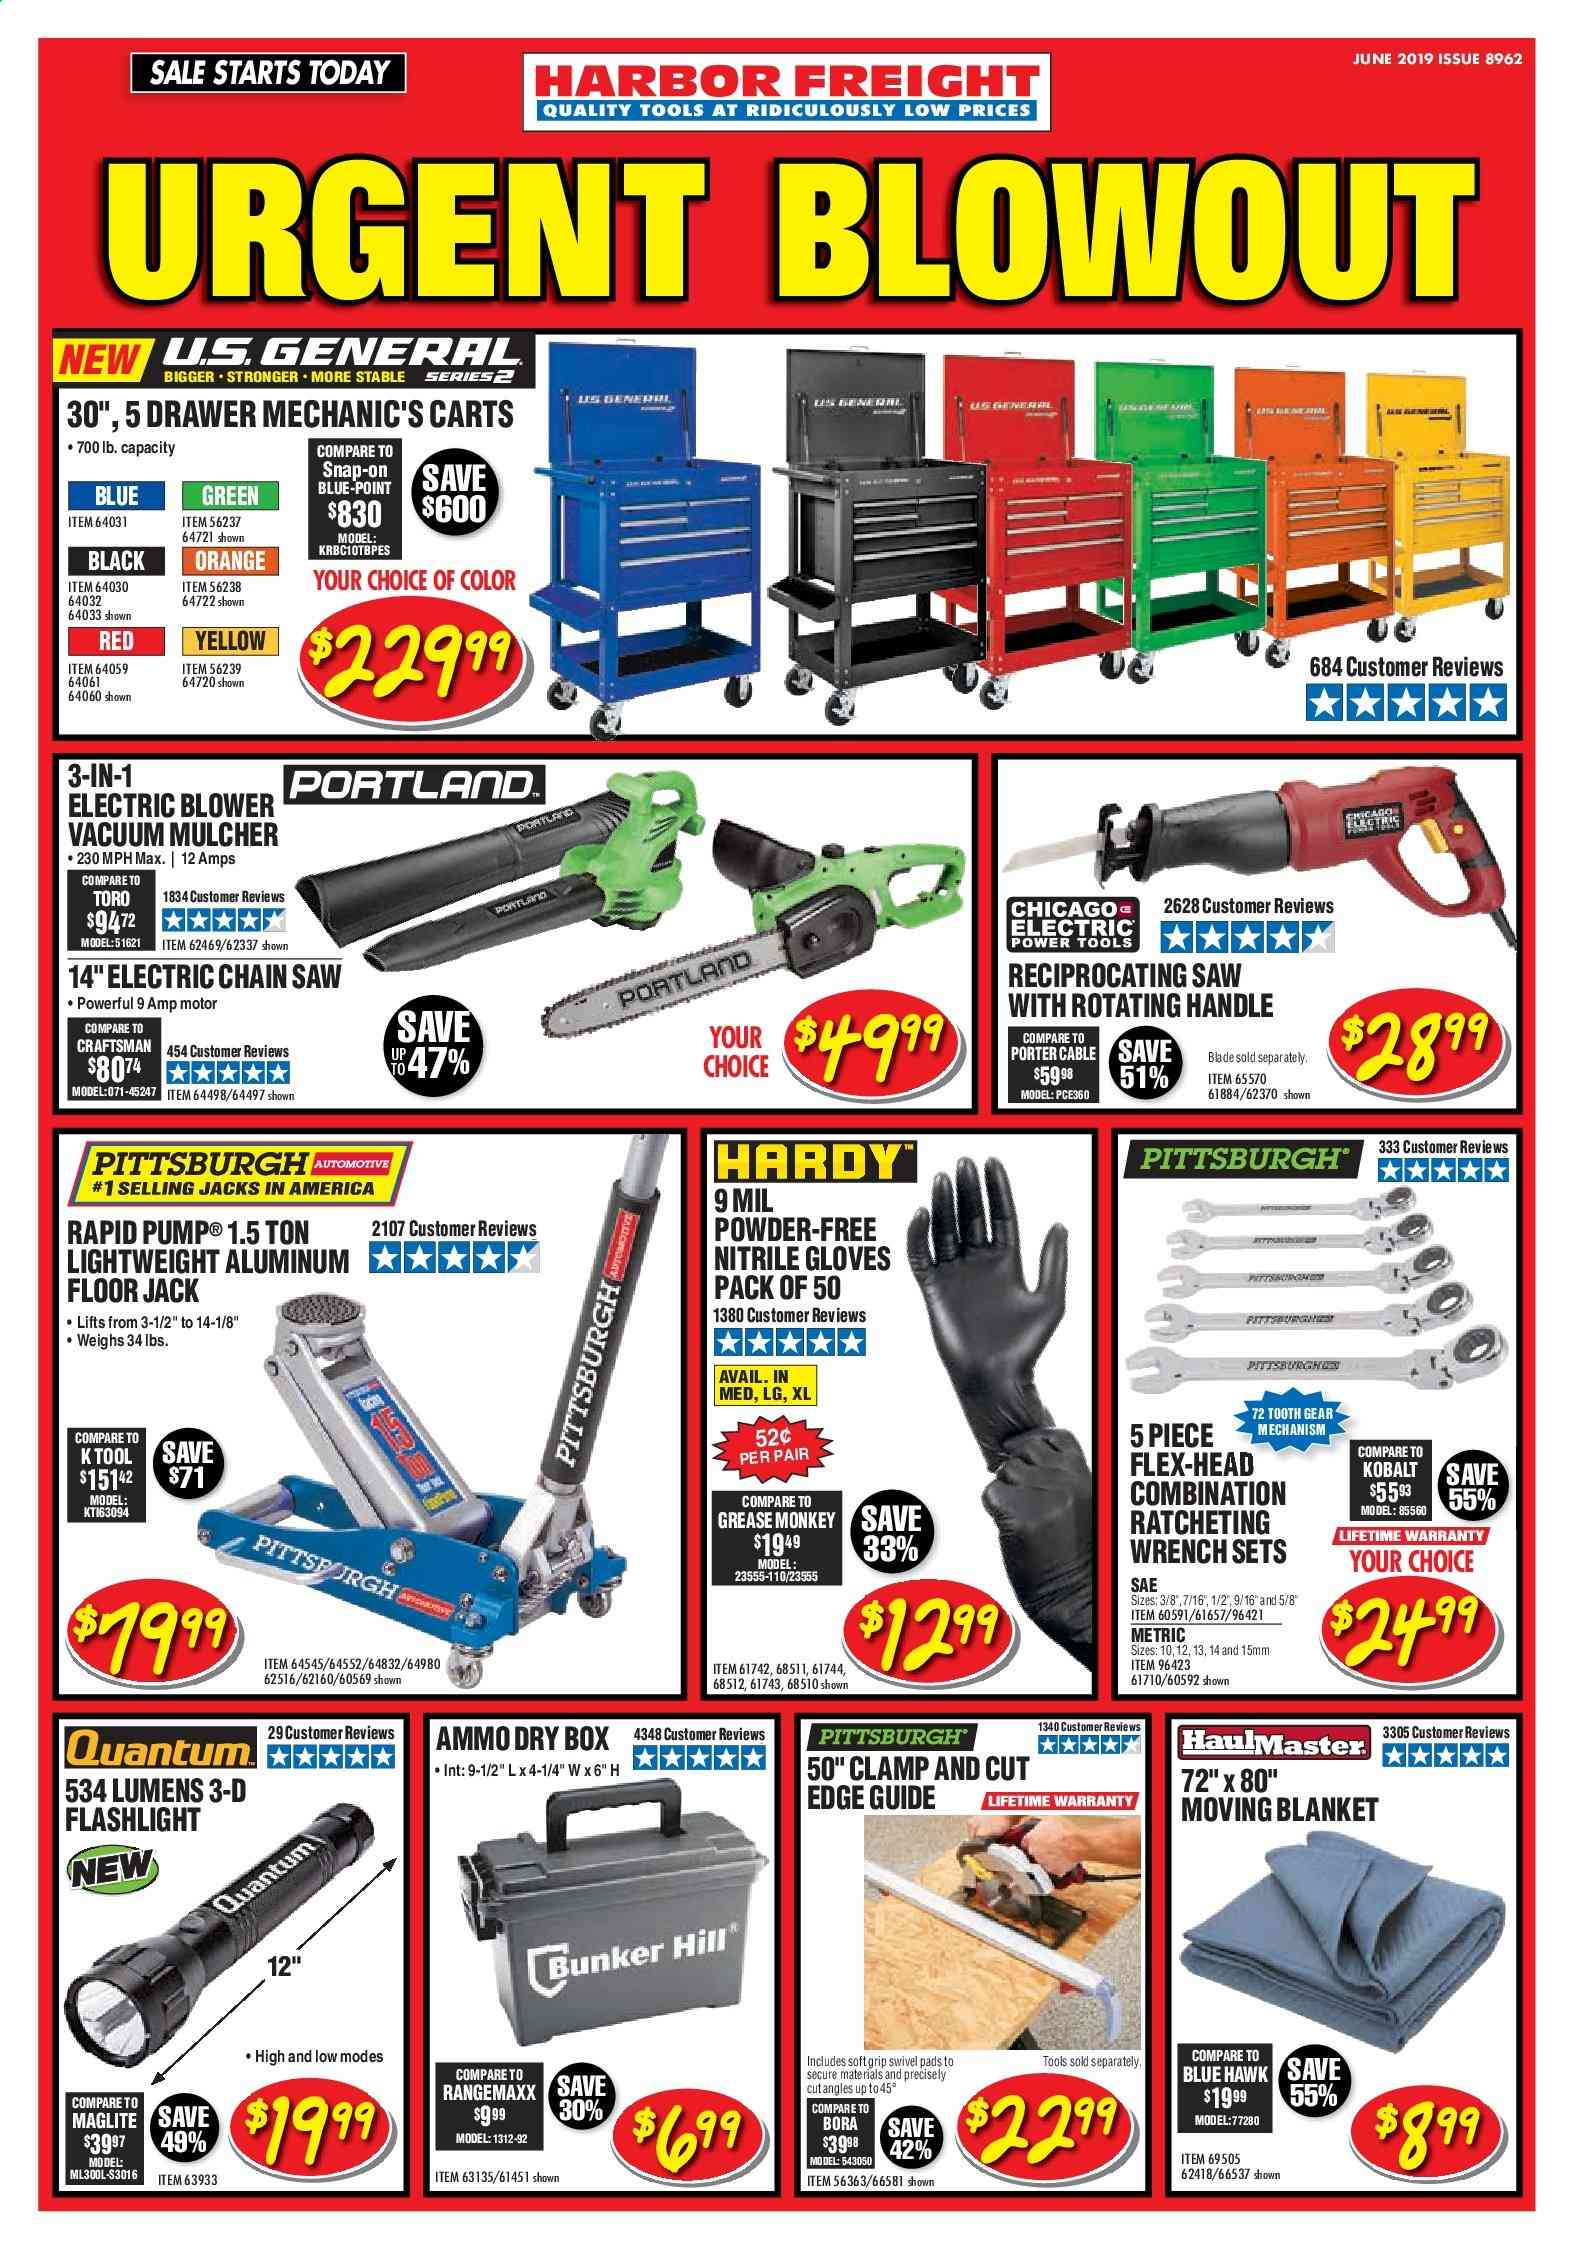 Harbor Freight Flyer  - 06.01.2019 - 06.30.2019. Page 1.